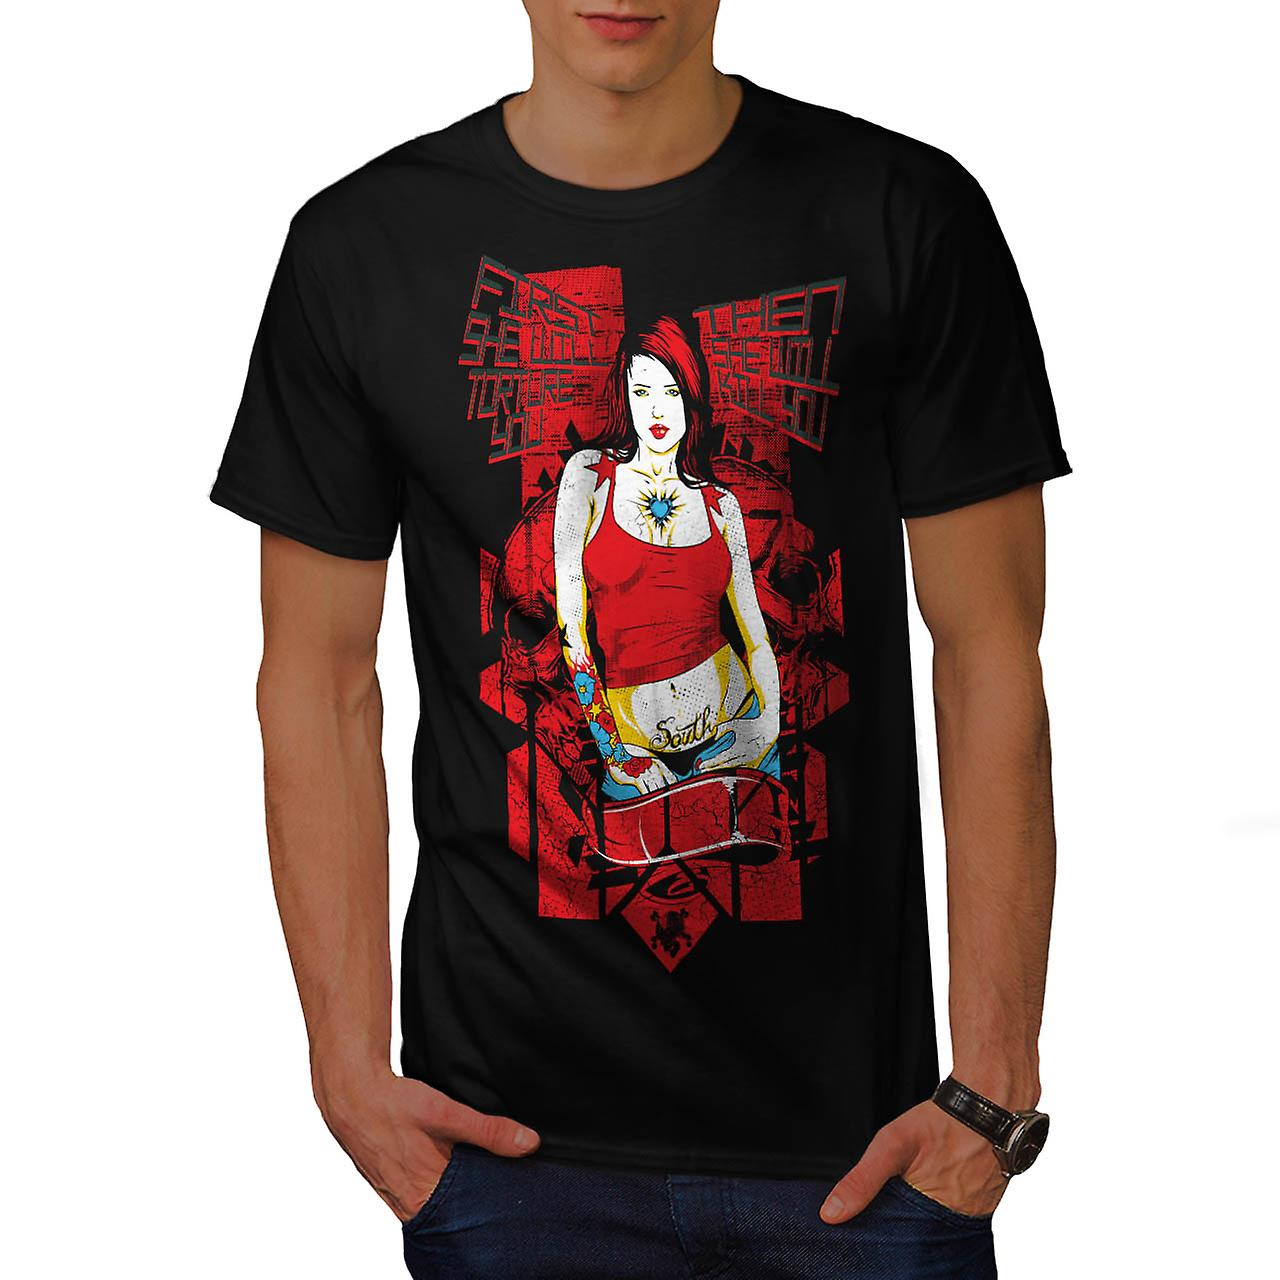 Torture Killer Girl Murder Chick Men Black T-shirt | Wellcoda